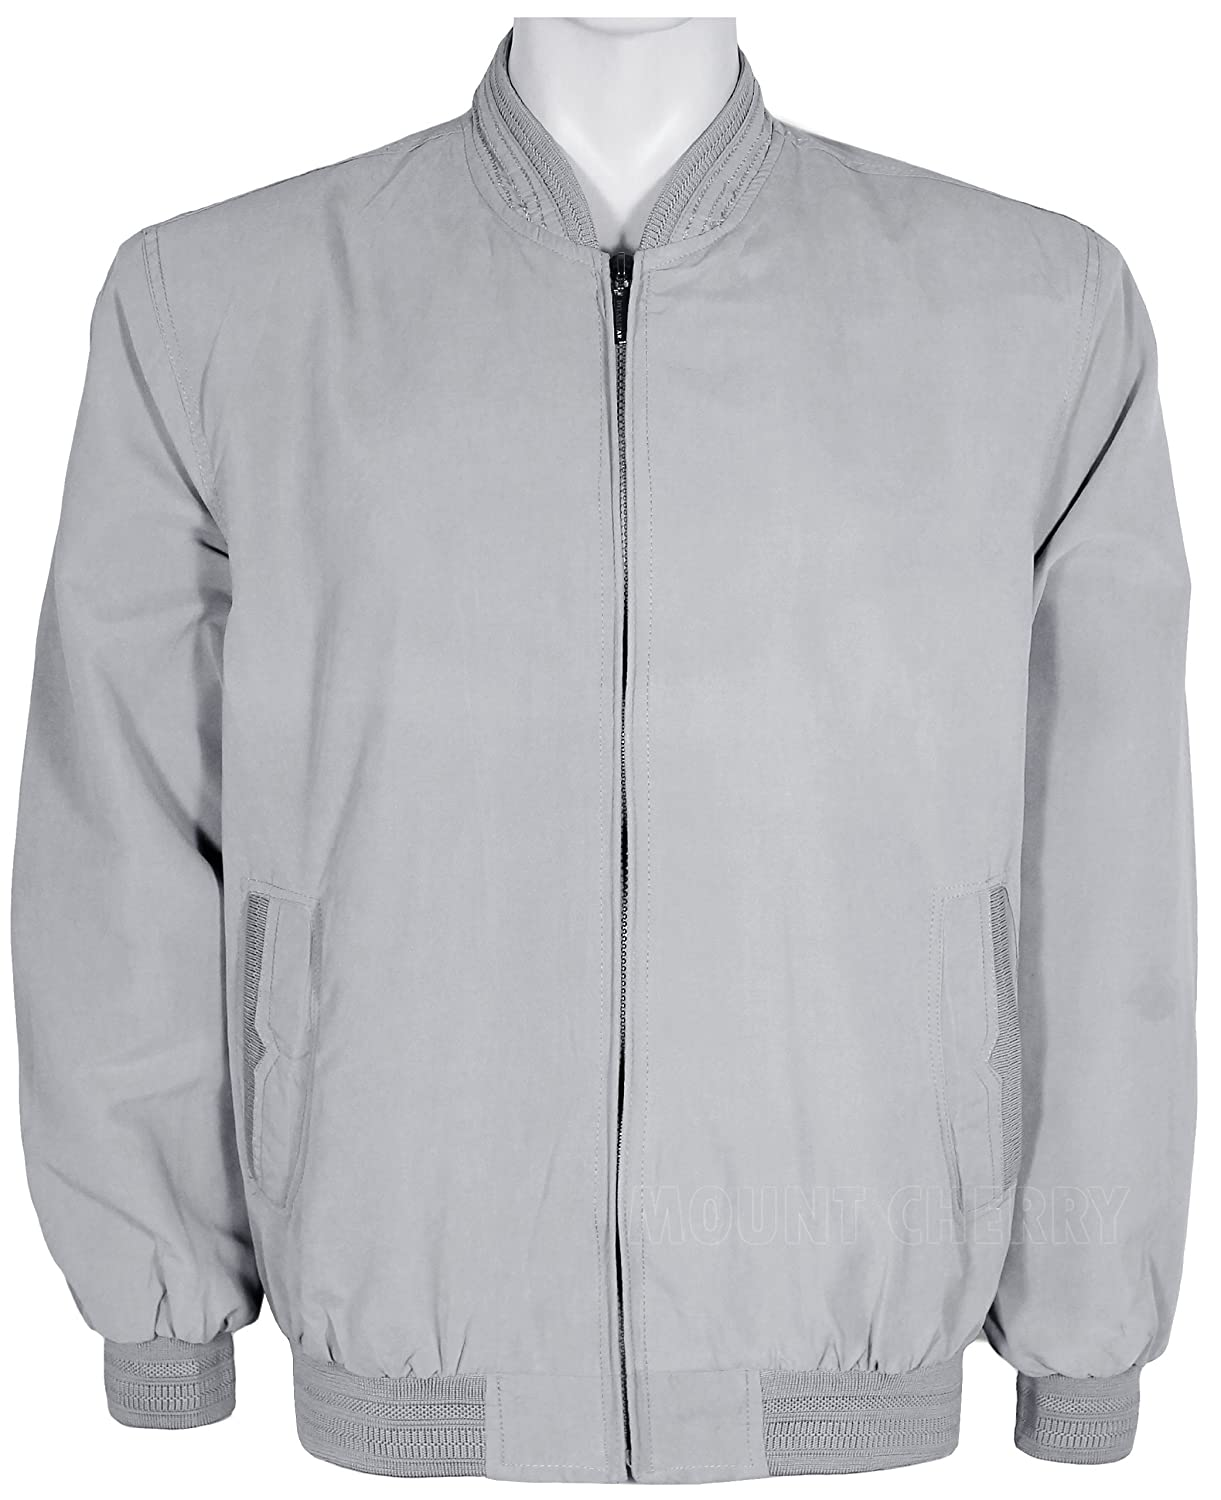 Mens Summer Lightweight Jacket Grey (Medium, Grey): Amazon.co.uk ...